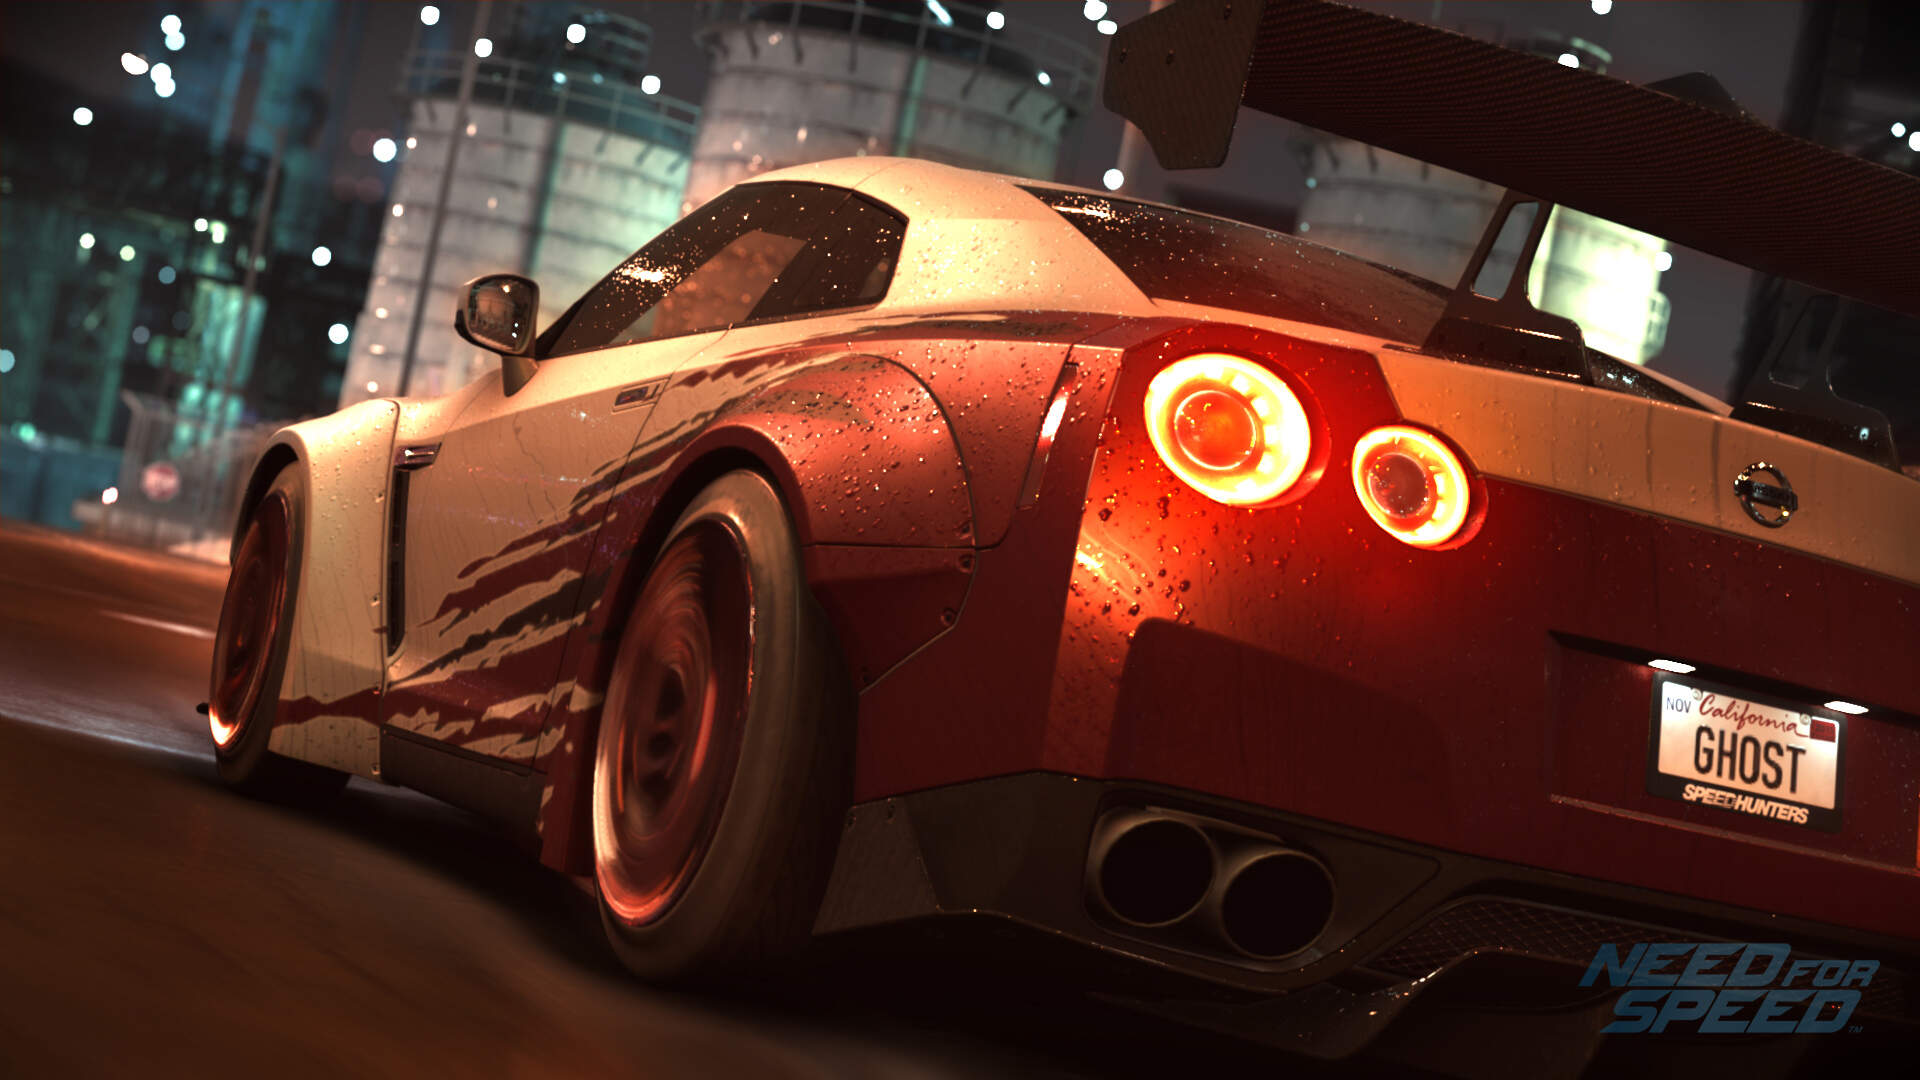 Need for Speed PS4 Review: Back to its Roots